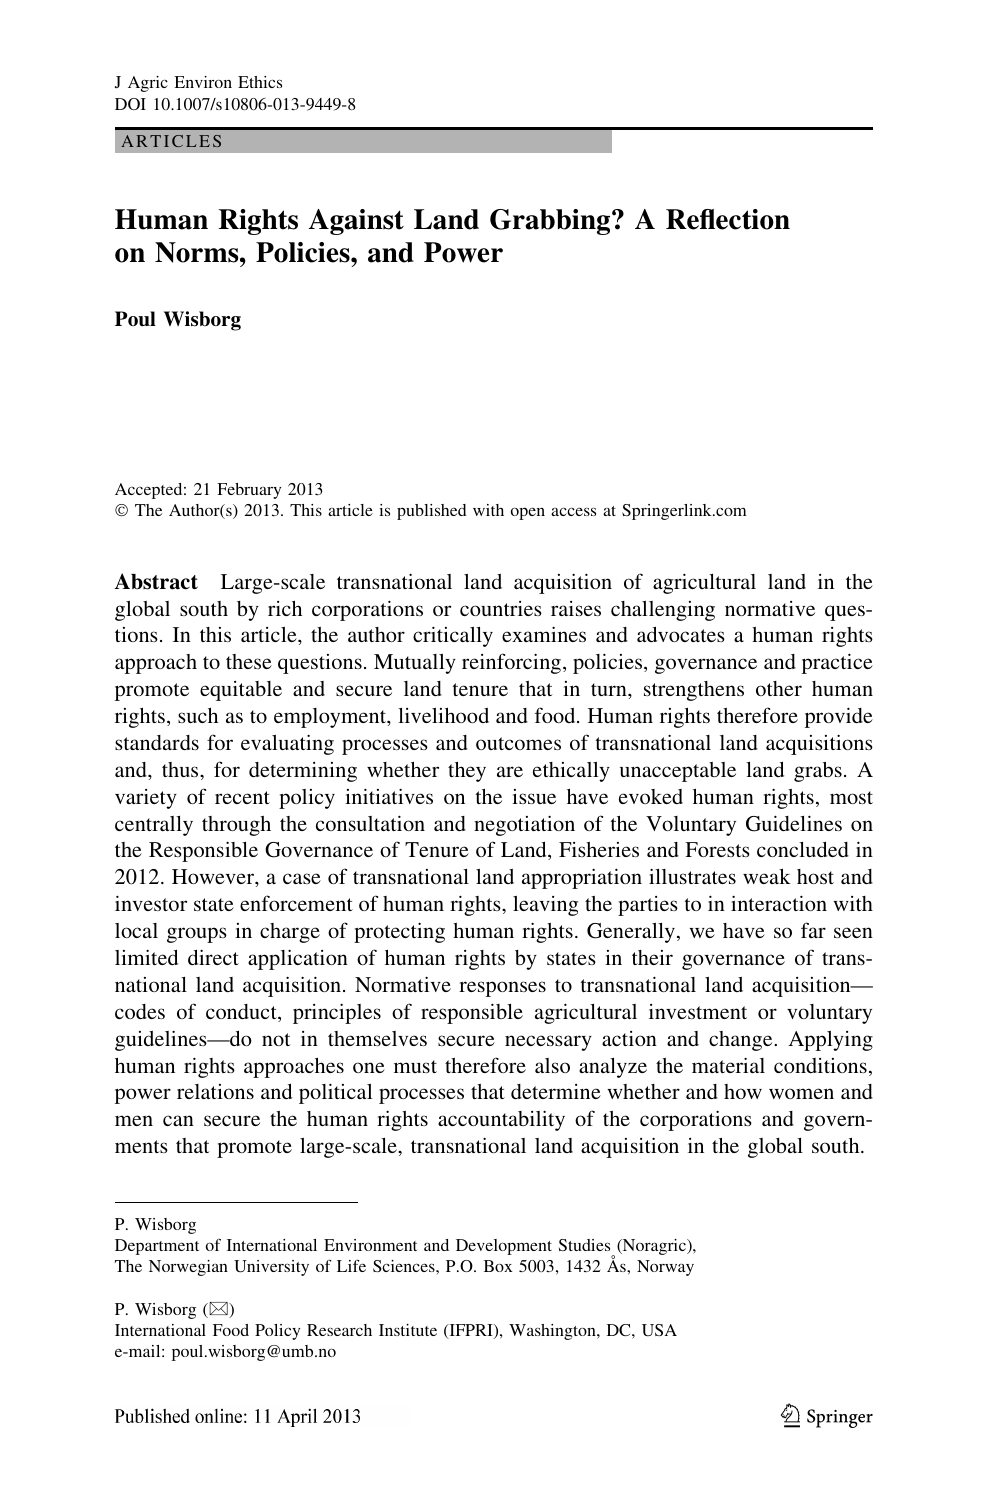 Human Rights Against Land Grabbing? A Reflection on Norms, Policies, and  Power – topic of research paper in Law. Download scholarly article PDF and  read for free on CyberLeninka open science hub.